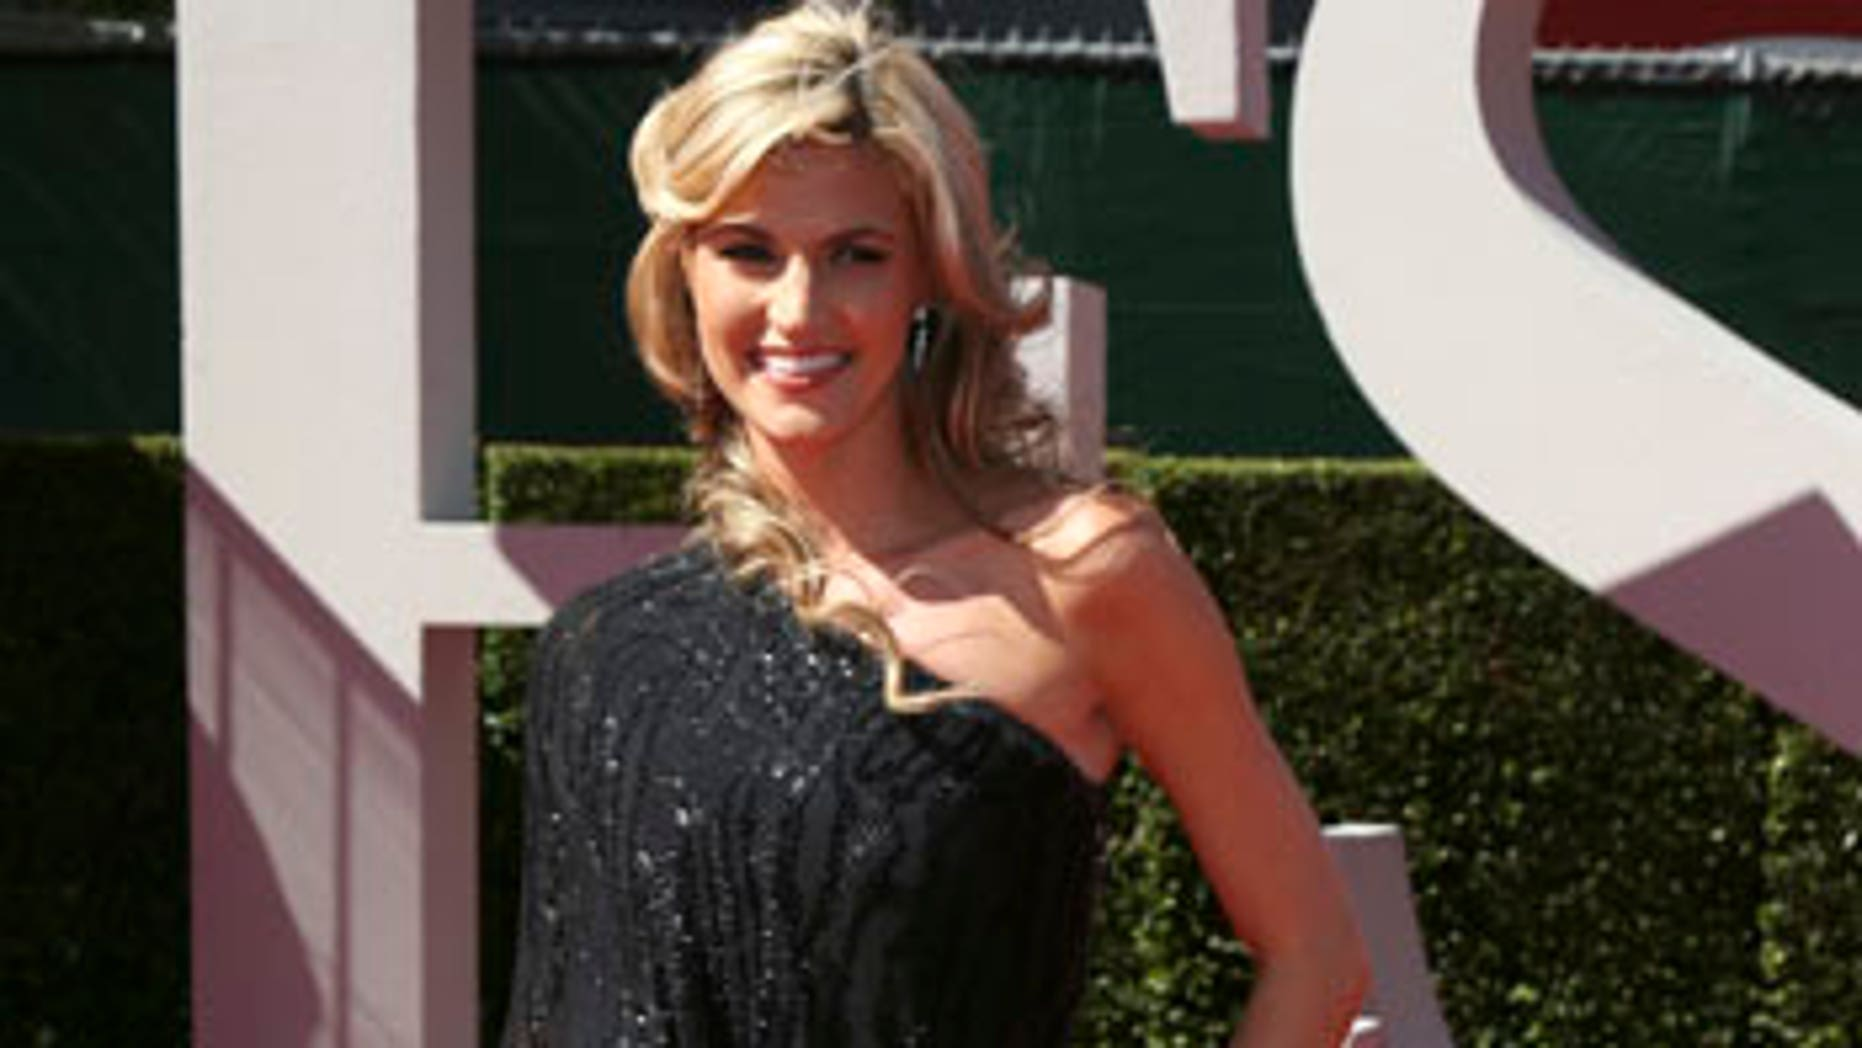 Erin Andrews at the ESPY Awards in Los Angeles on July 14, 2009.